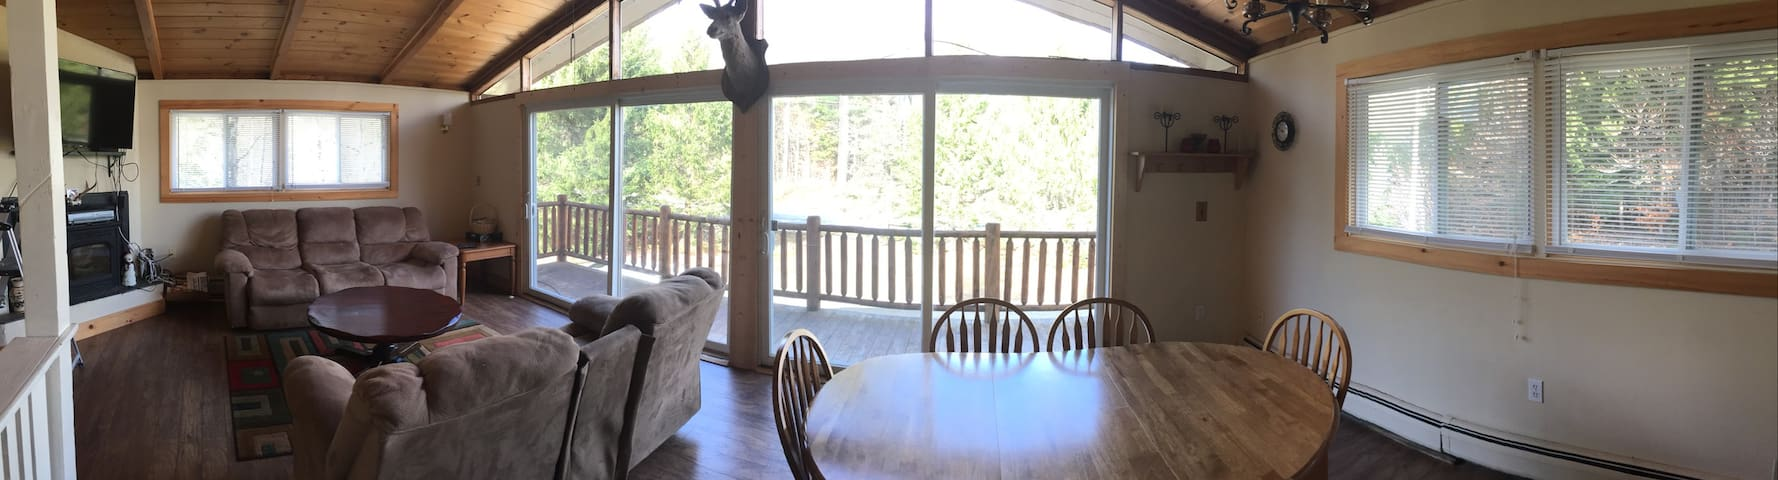 Stratton Mountain Ski Chalet